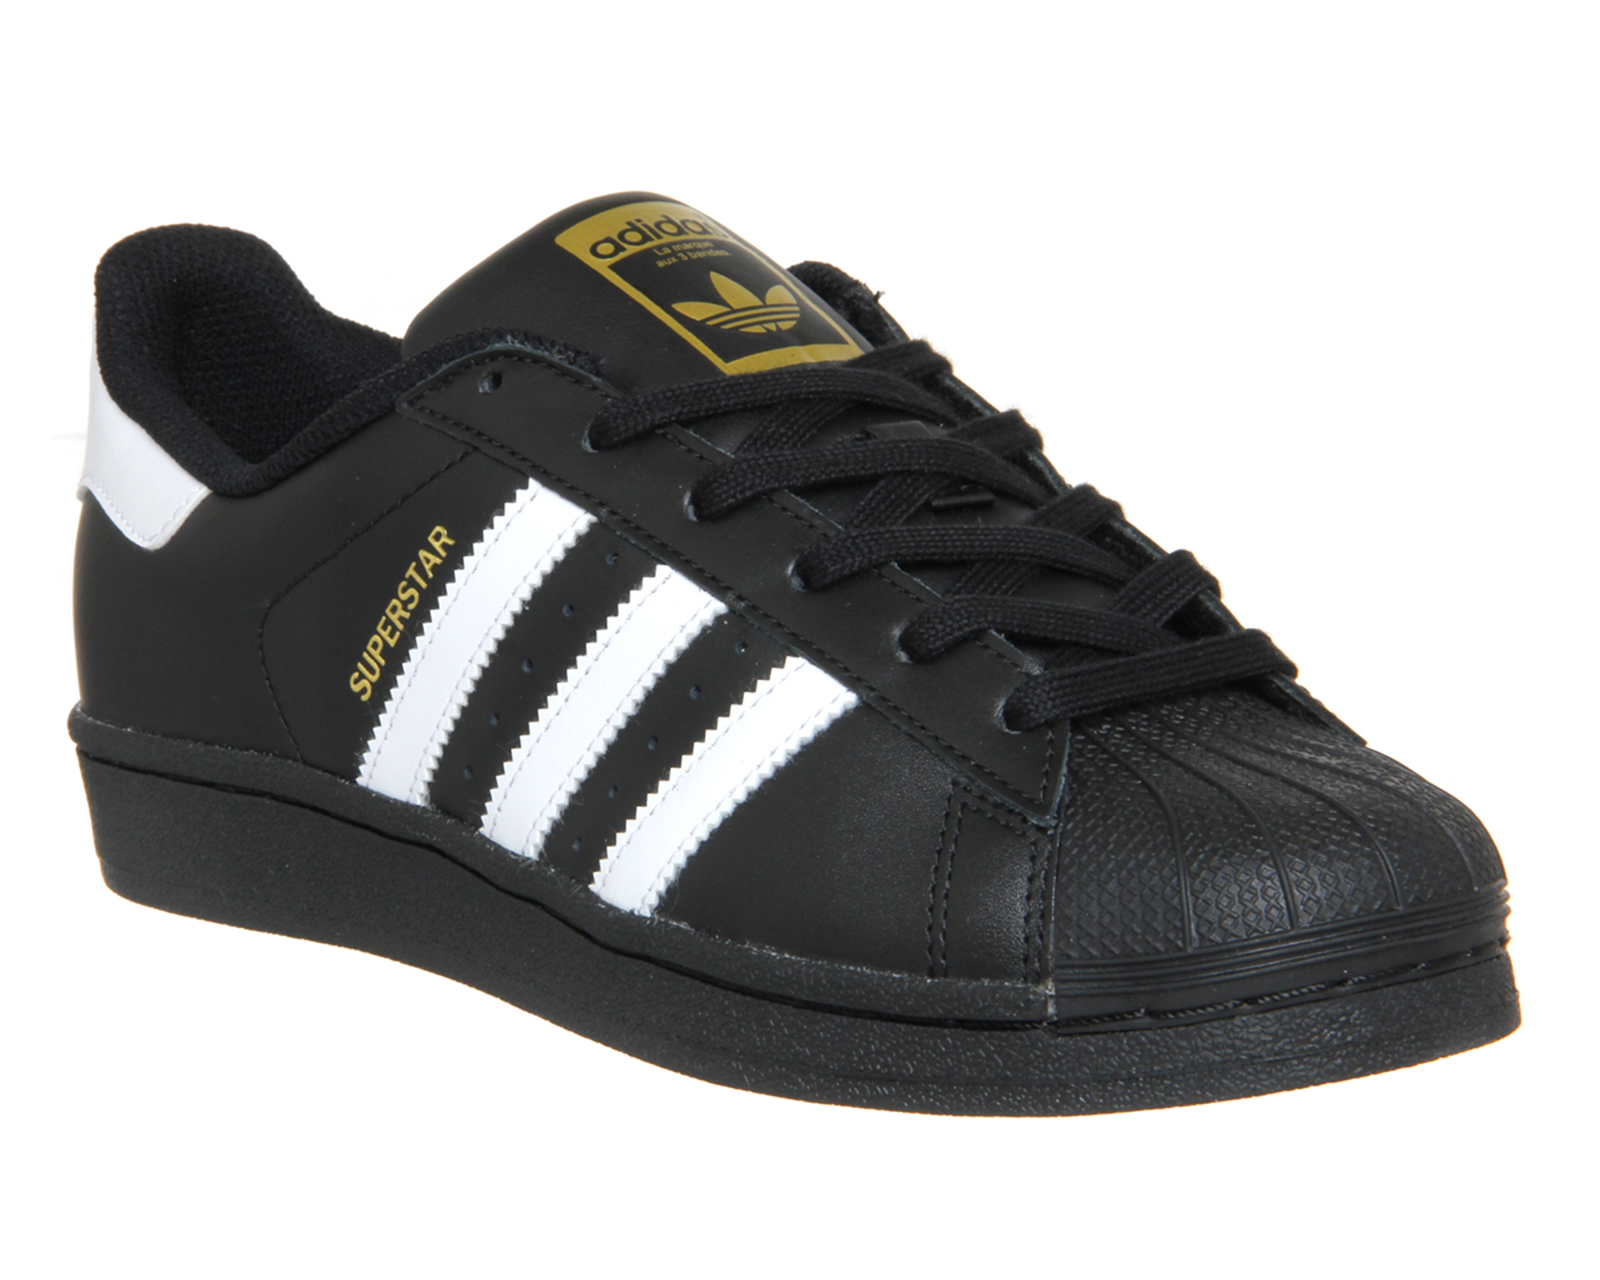 Womens-Adidas-Superstar-BLACK-WHITE-FOUNDATION-Trainers-Shoes